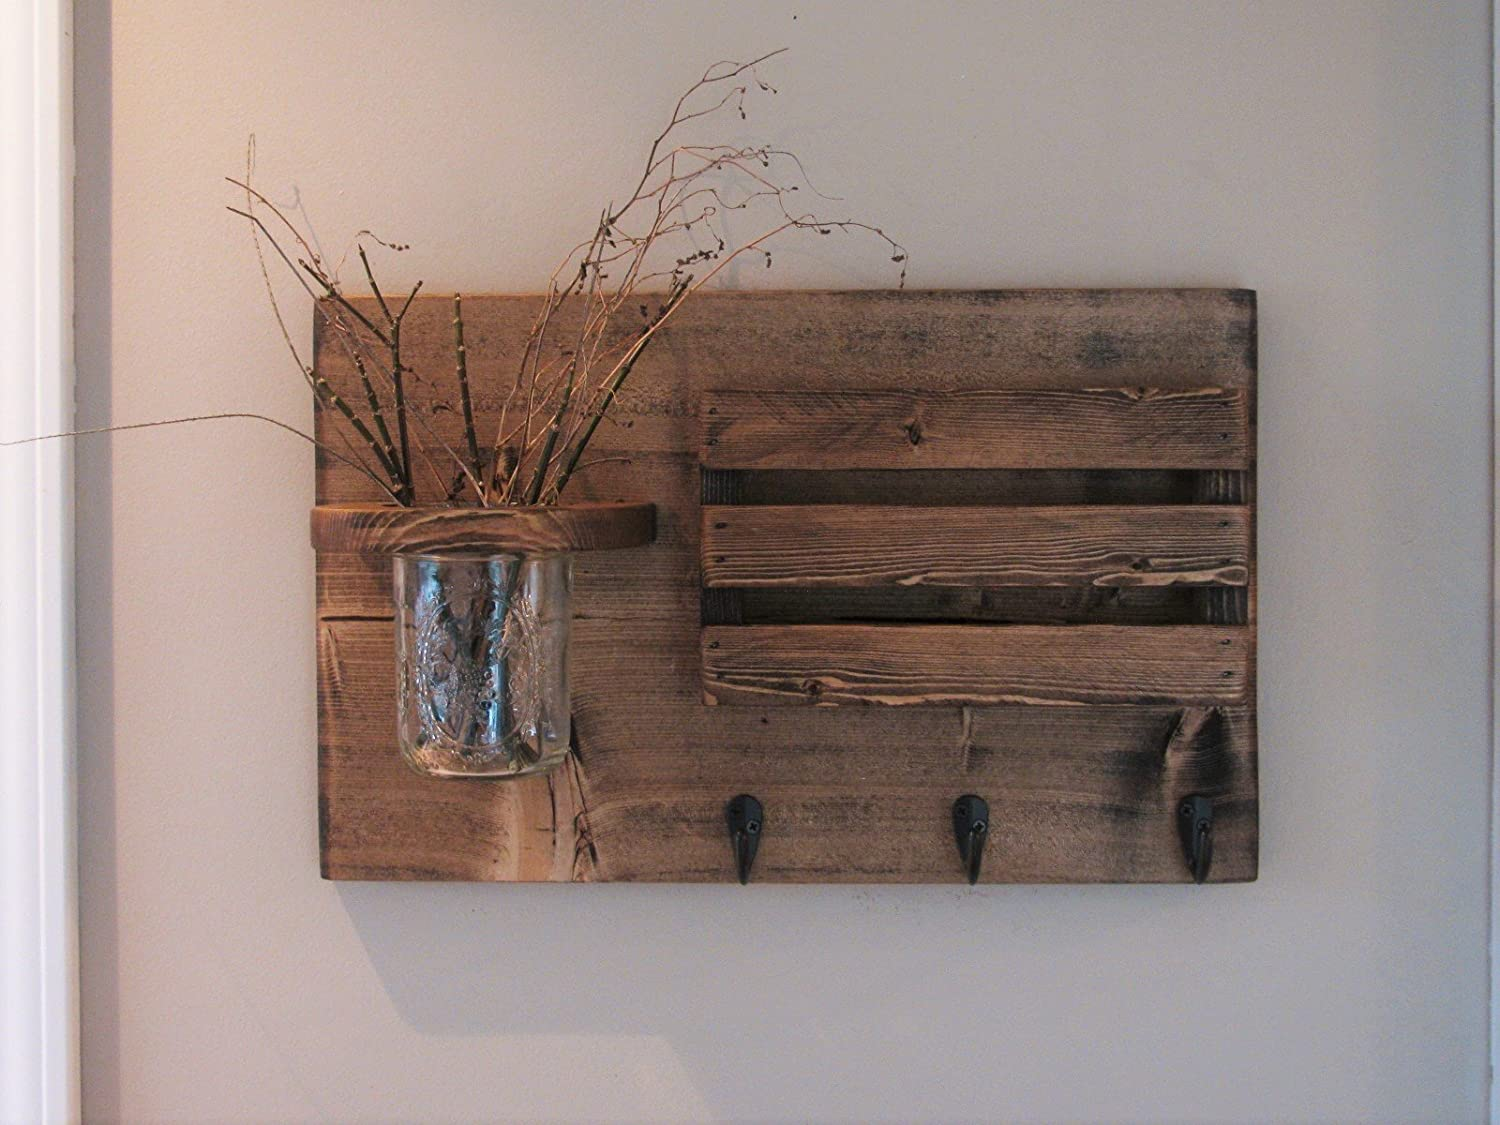 Mail Holder and Jar, Mail Organizer, Rustic Organizer, Key Holder, Personalization Option Available